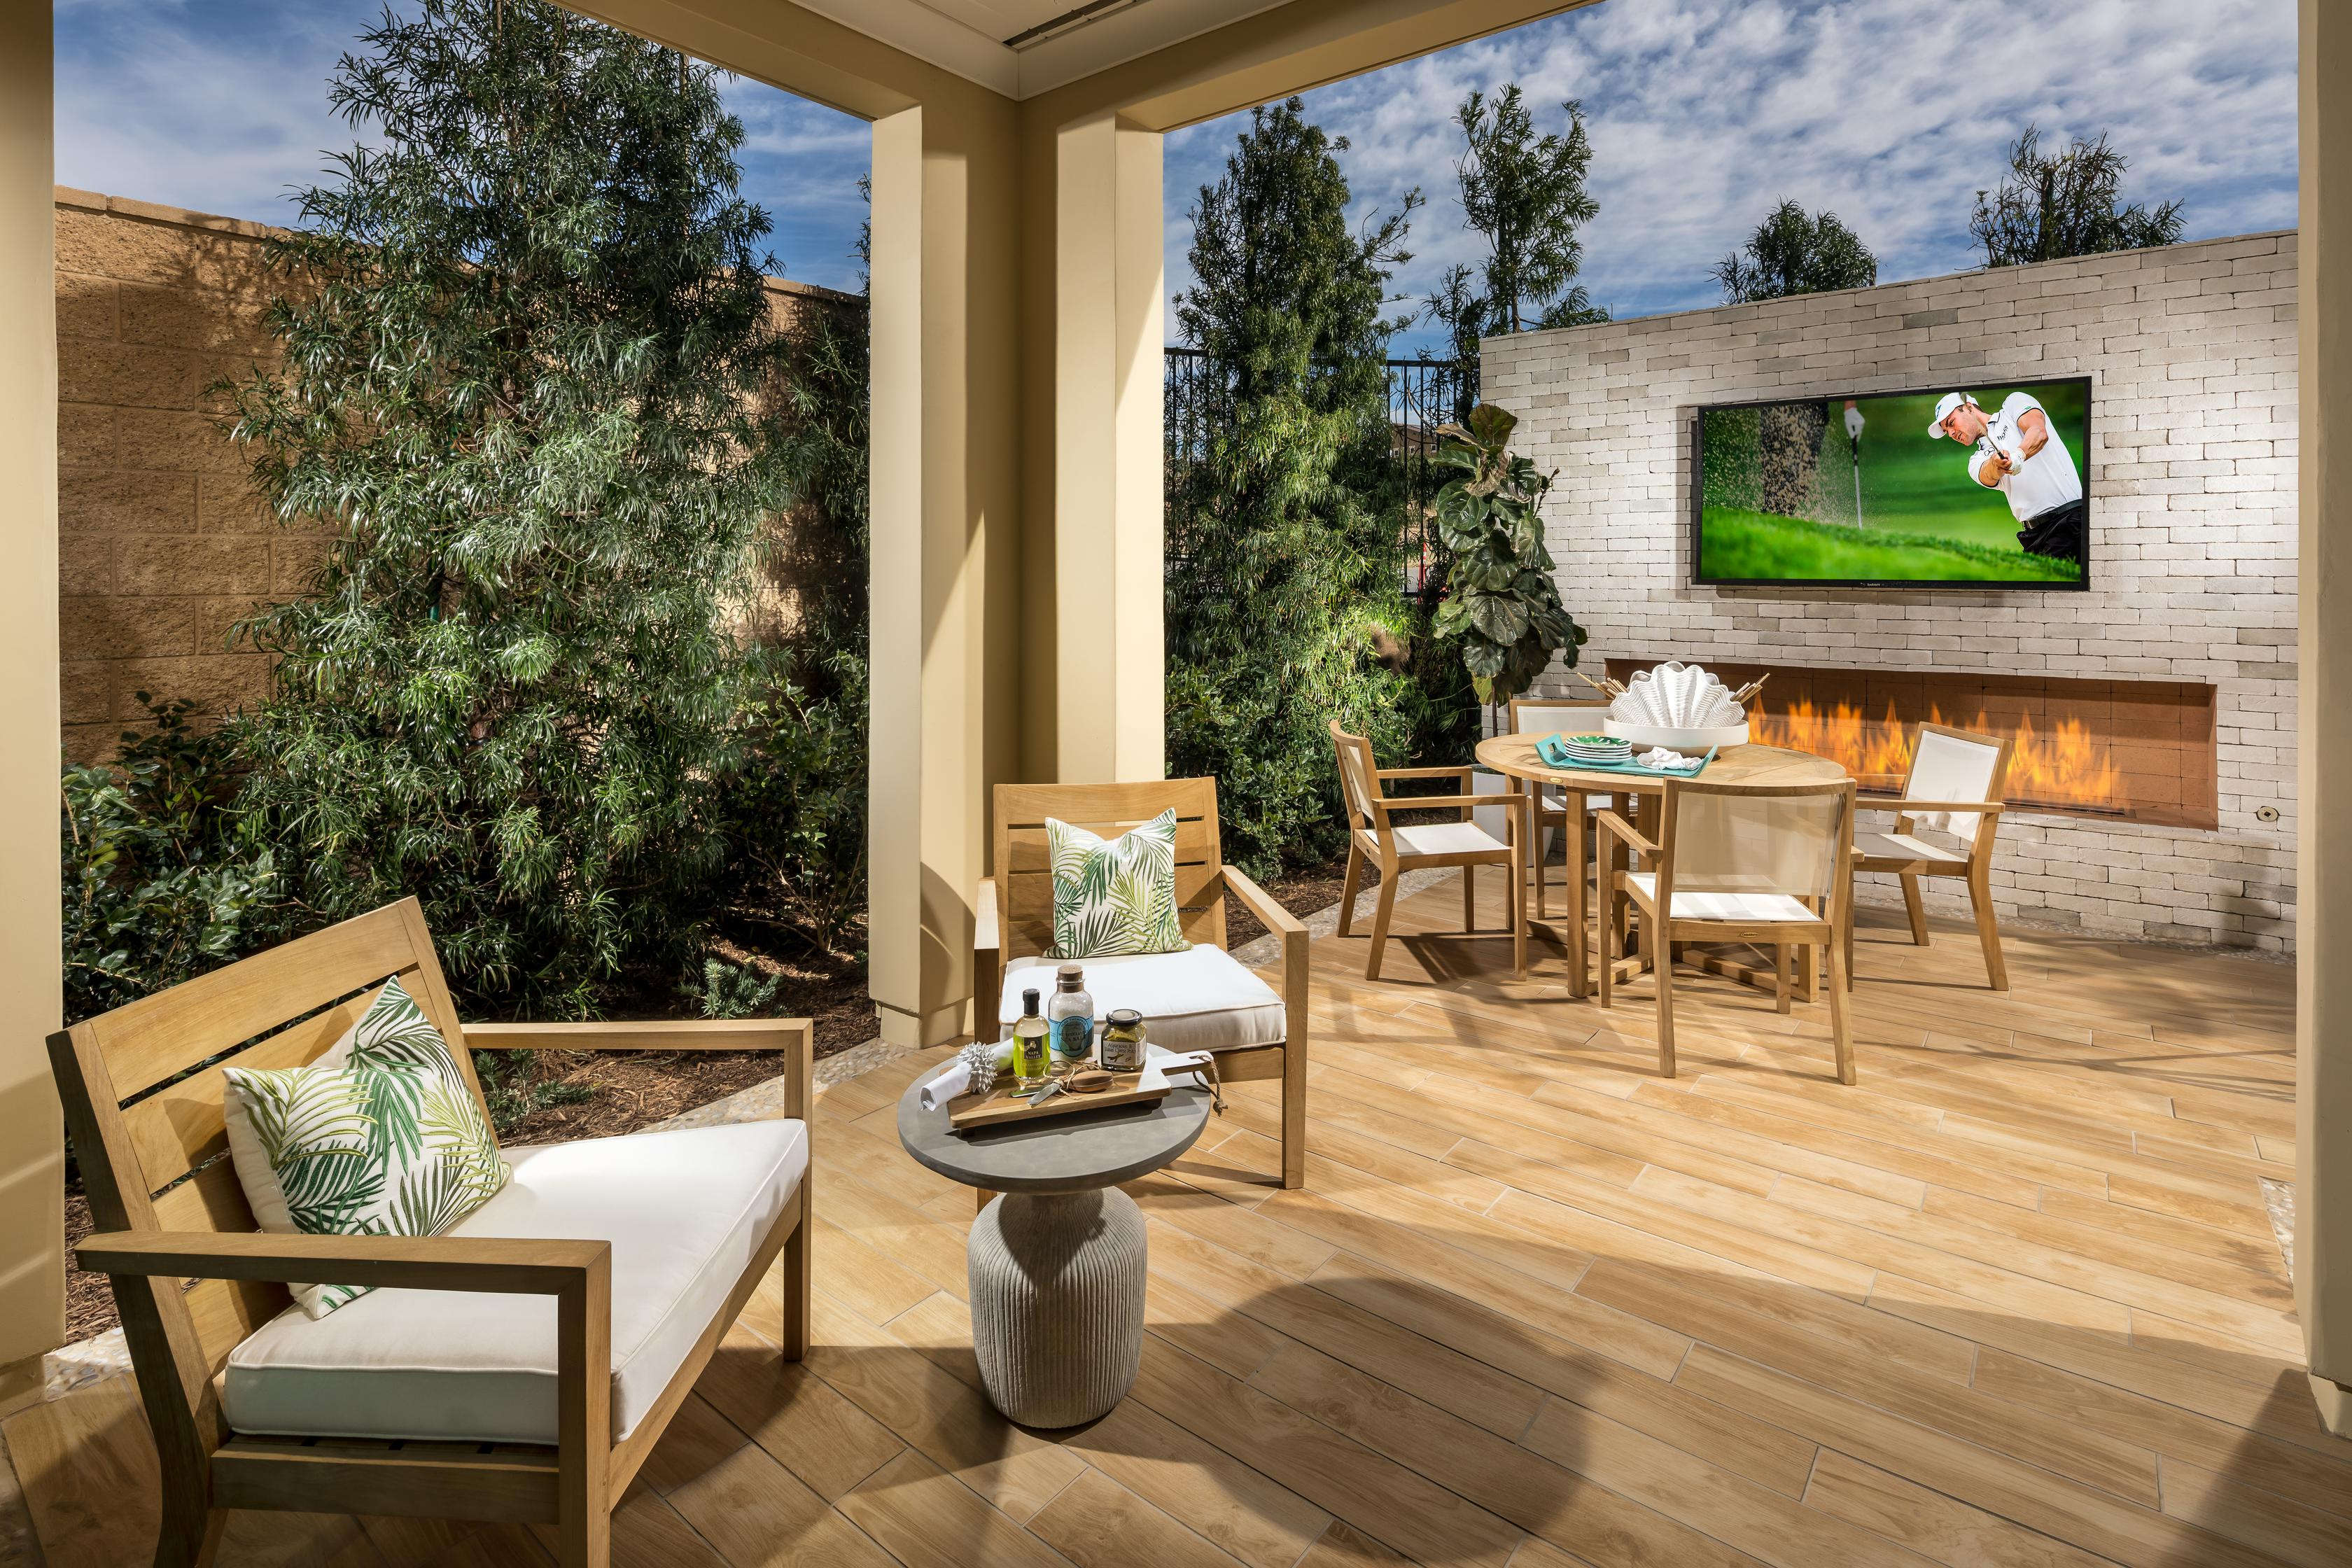 Covered outdoor living space with seating, fire pit and a tv.